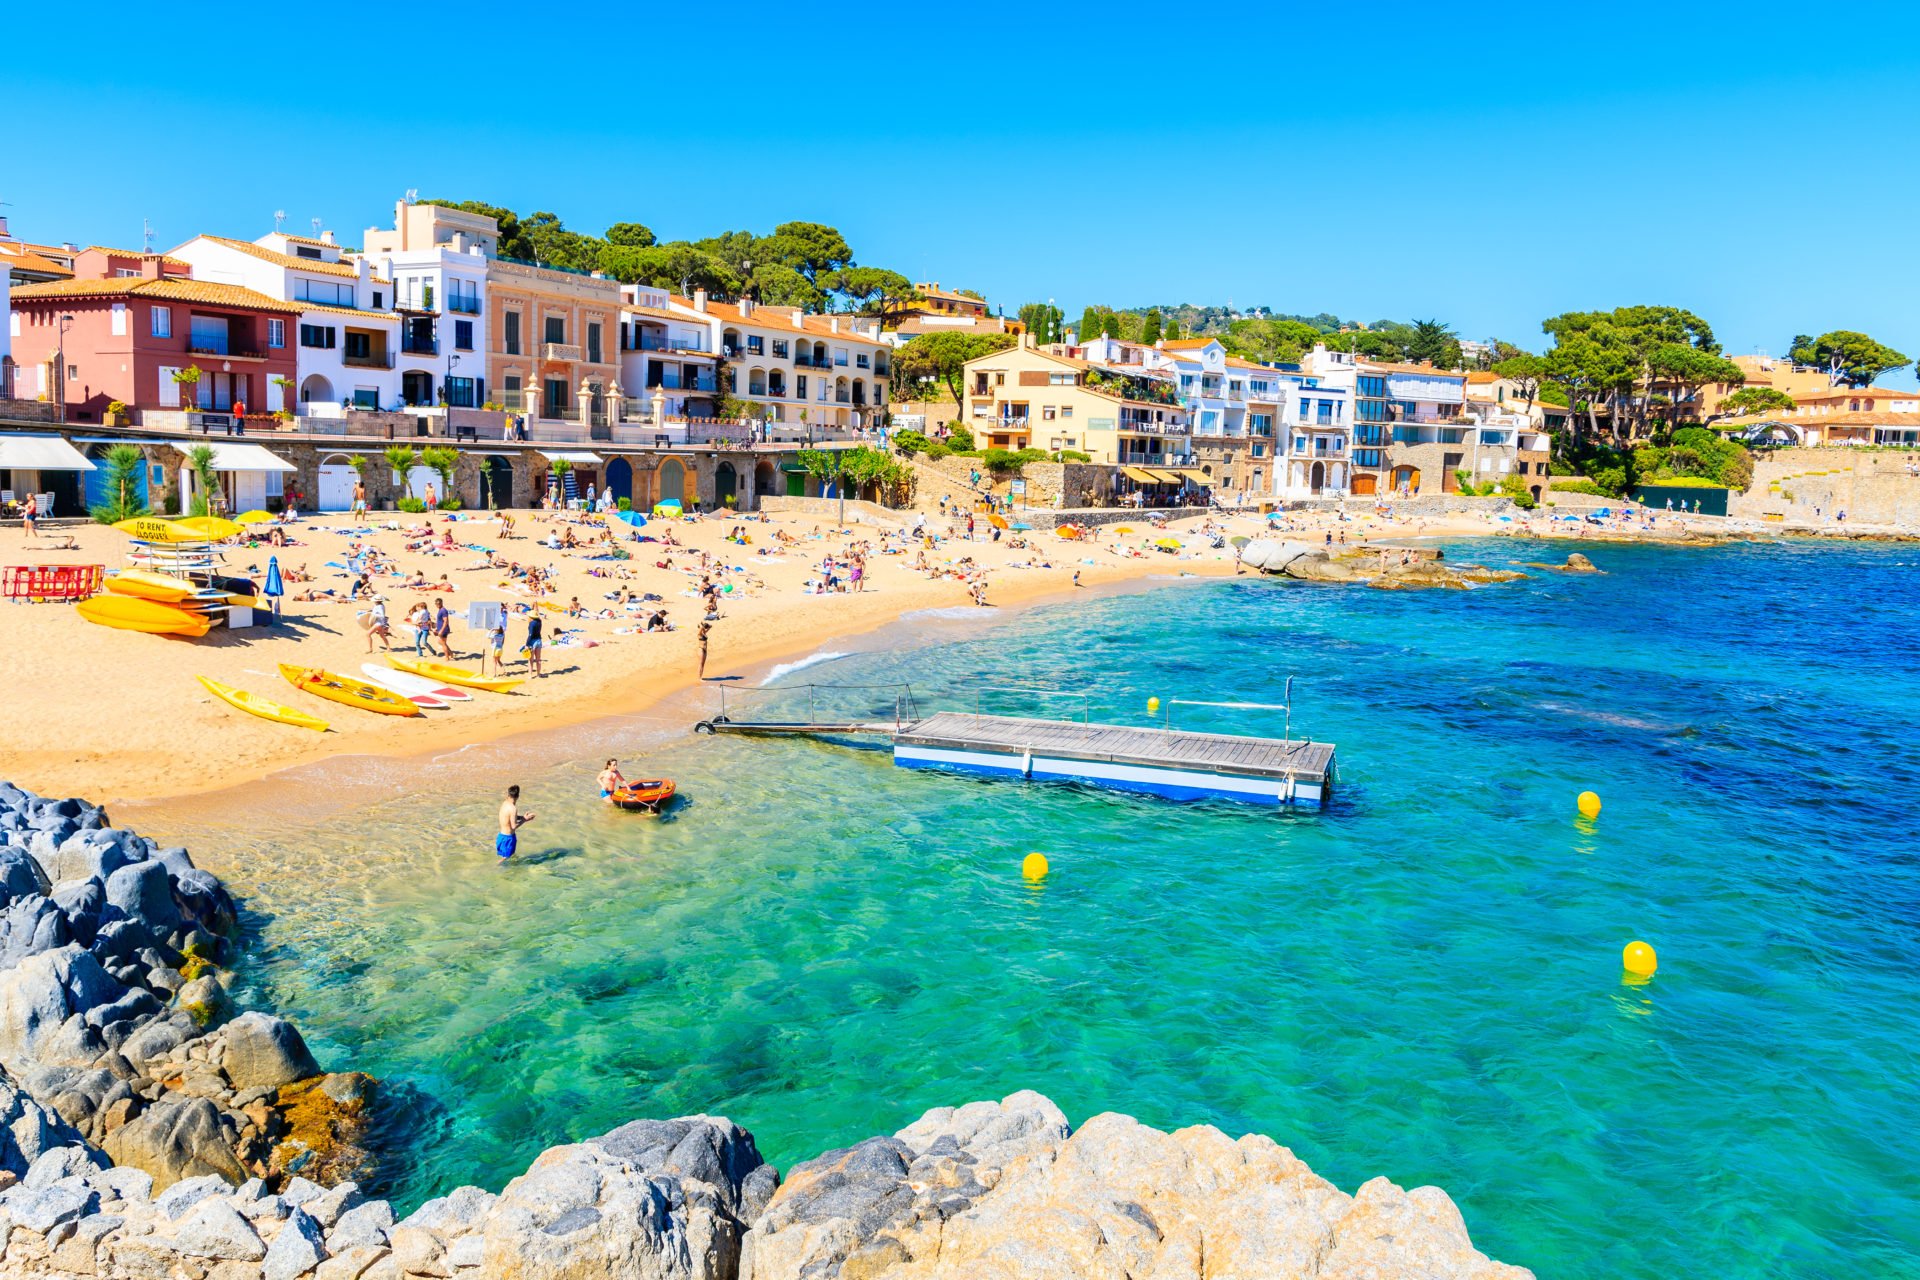 People in water on beach in village of Calella de Palafrugell, Costa Brava, Spain